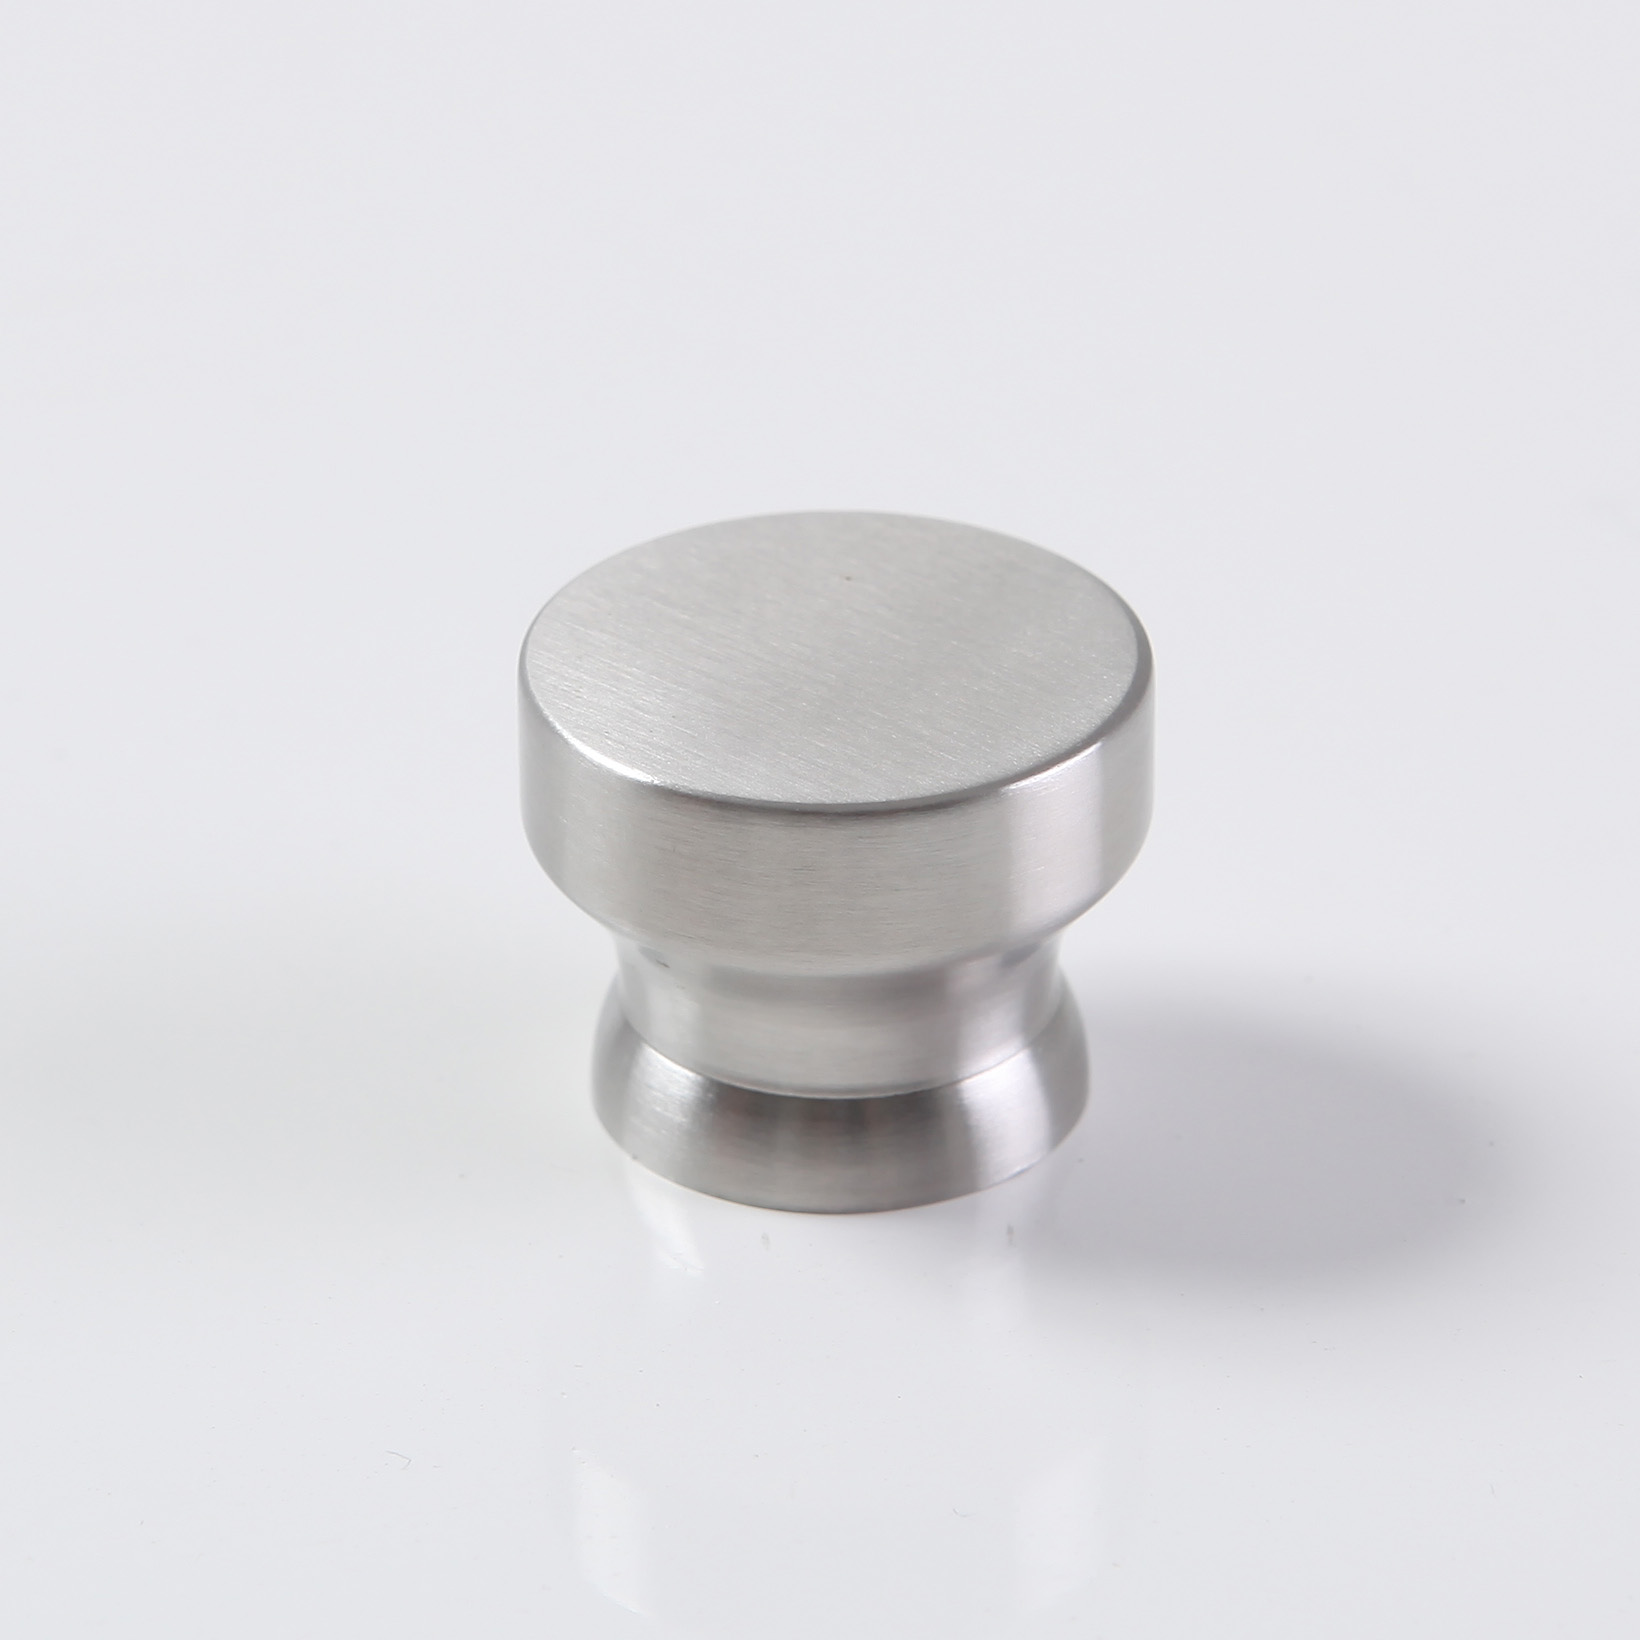 304# stainless steel cabinet knobs